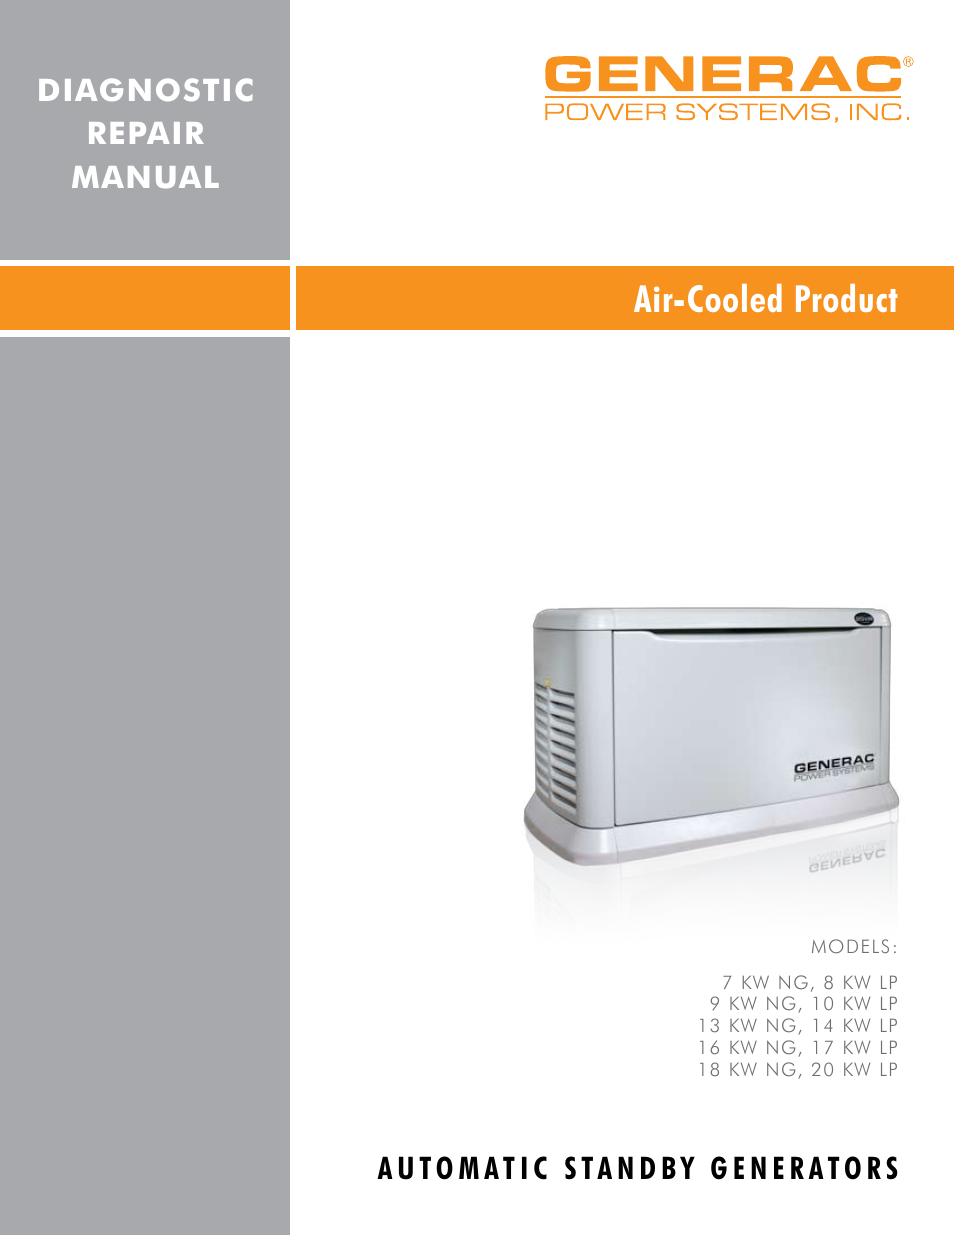 Generac Power Systems 8 kW LP User Manual | 192 pages | Also for: 10 kW LP,  7 kW NG, 14 kW LP, 13 kW NG, 17 kW LP, 18 kW NG, 20 kW LP, 16 kW NG, 9 kW NG